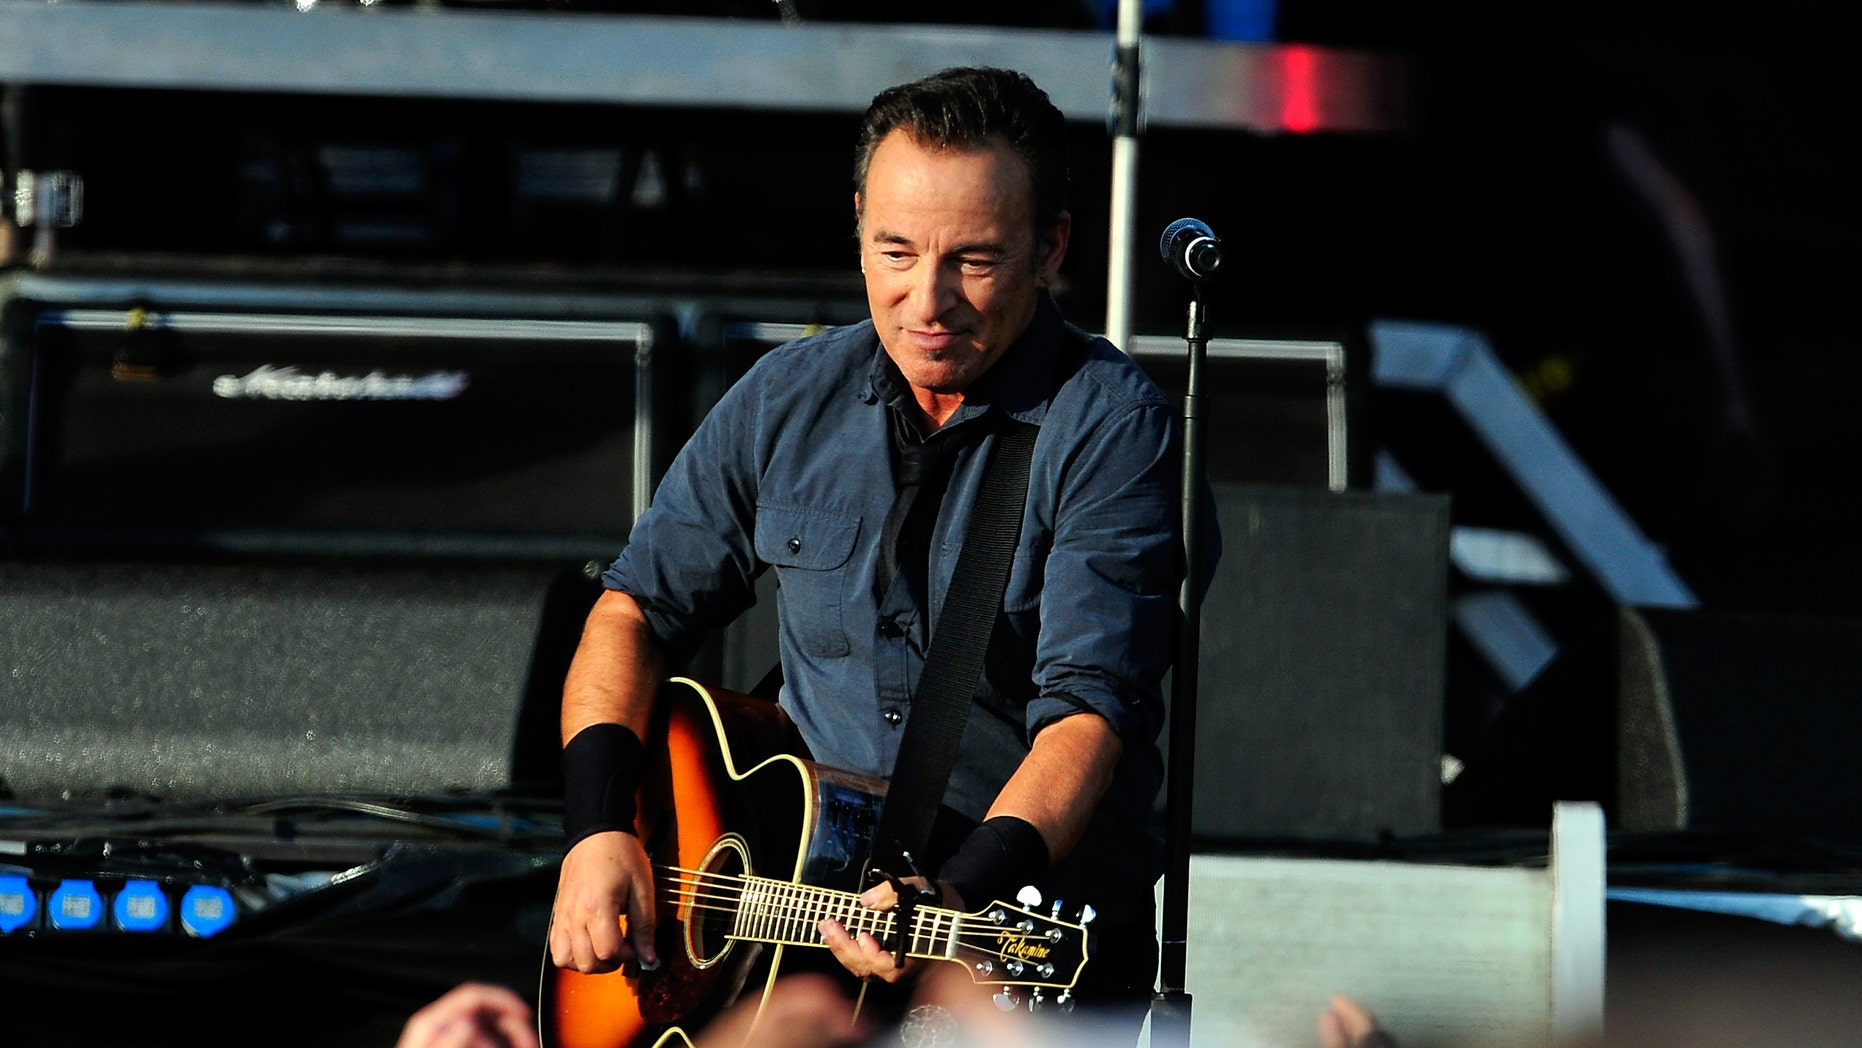 LONDON, ENGLAND - JUNE 30:  Bruce Springsteen performs at Hard Rock Calling Day 2 at Olympic Park on June 30, 2013 in London, England.  (Photo by Matt Kent/Getty Images)